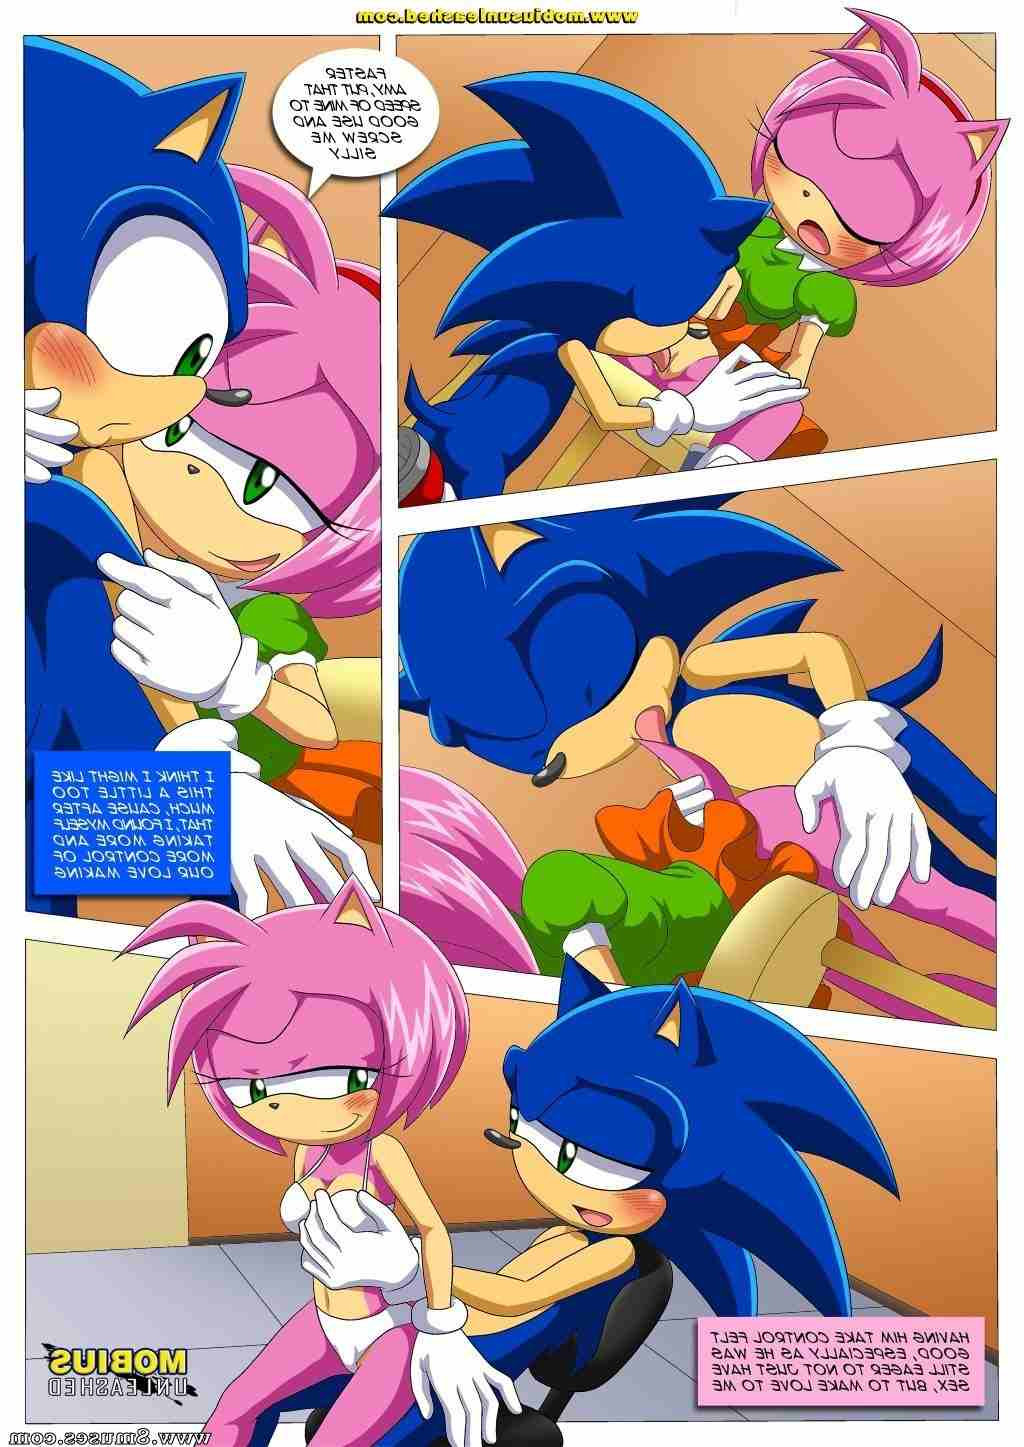 Mobiusunleashed-Comics/Sonic-and-Amy-with-a-TWIST Sonic_and_Amy_with_a_TWIST__8muses_-_Sex_and_Porn_Comics_18.jpg